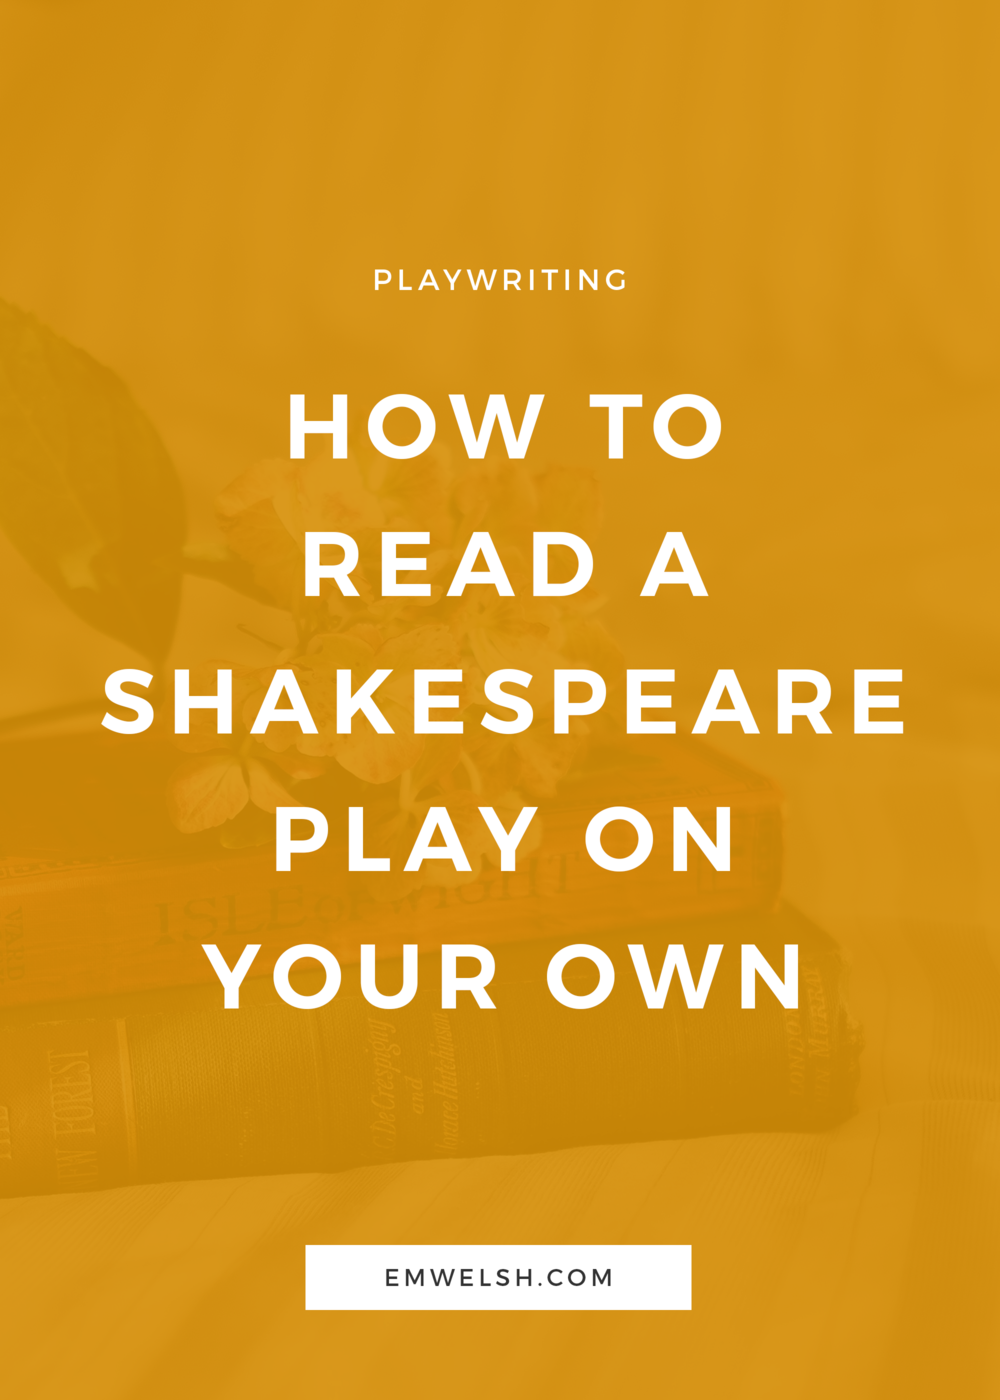 Read Shakespeare on Your Own